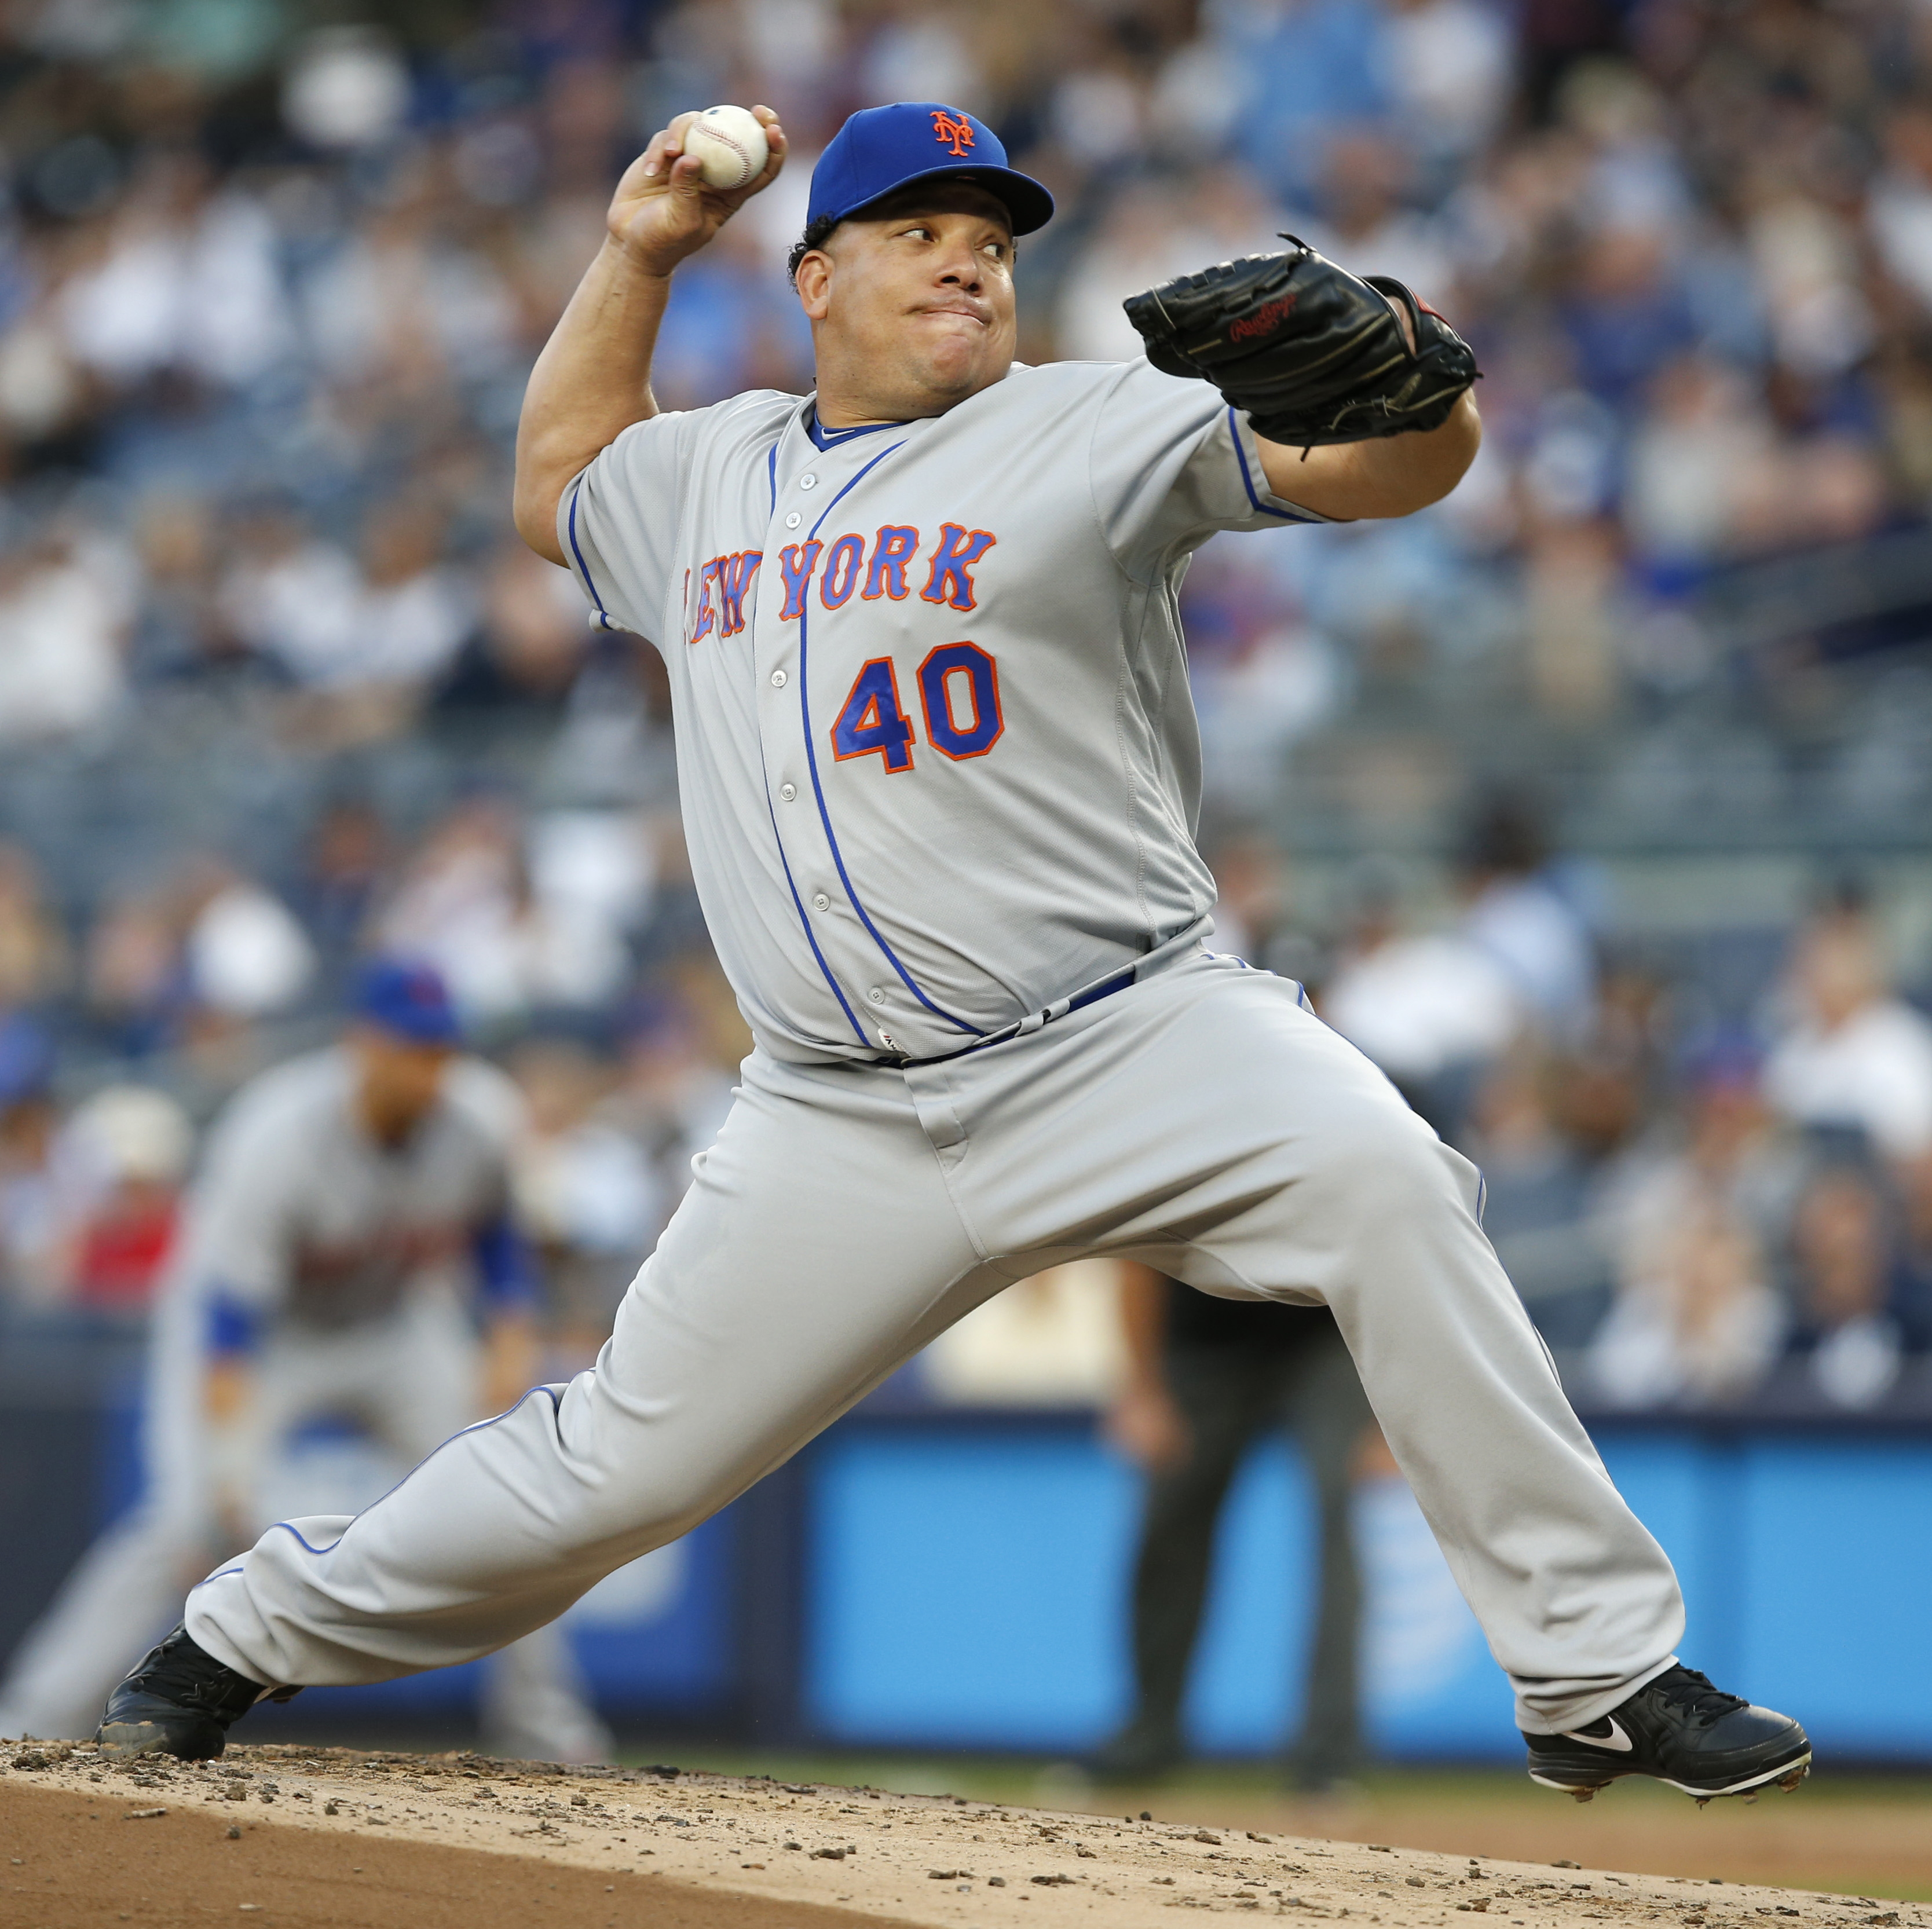 New York Mets starting pitcher Bartolo Colon winds up during the first inning of a baseball game against the New York Yankees, Thursday, Aug. 4, 2016, in New York. (AP Photo/Kathy Willens)